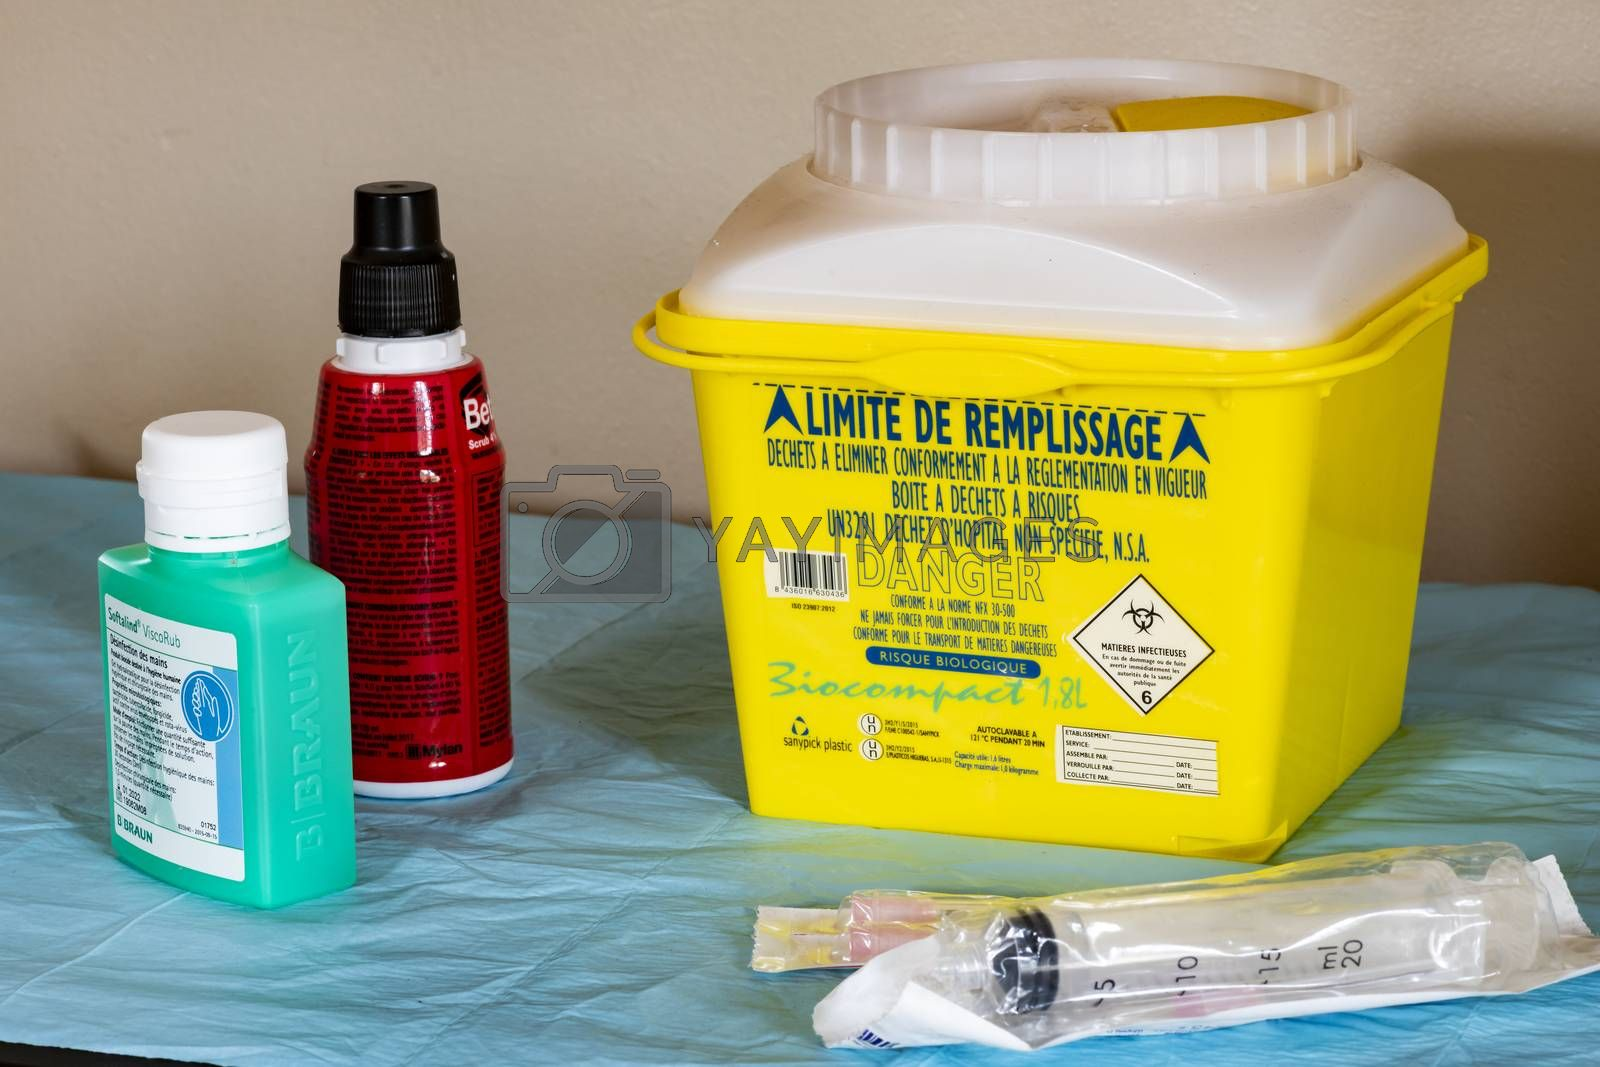 Yellow Medical waste container (with indication in French) use at home for cancer treatment